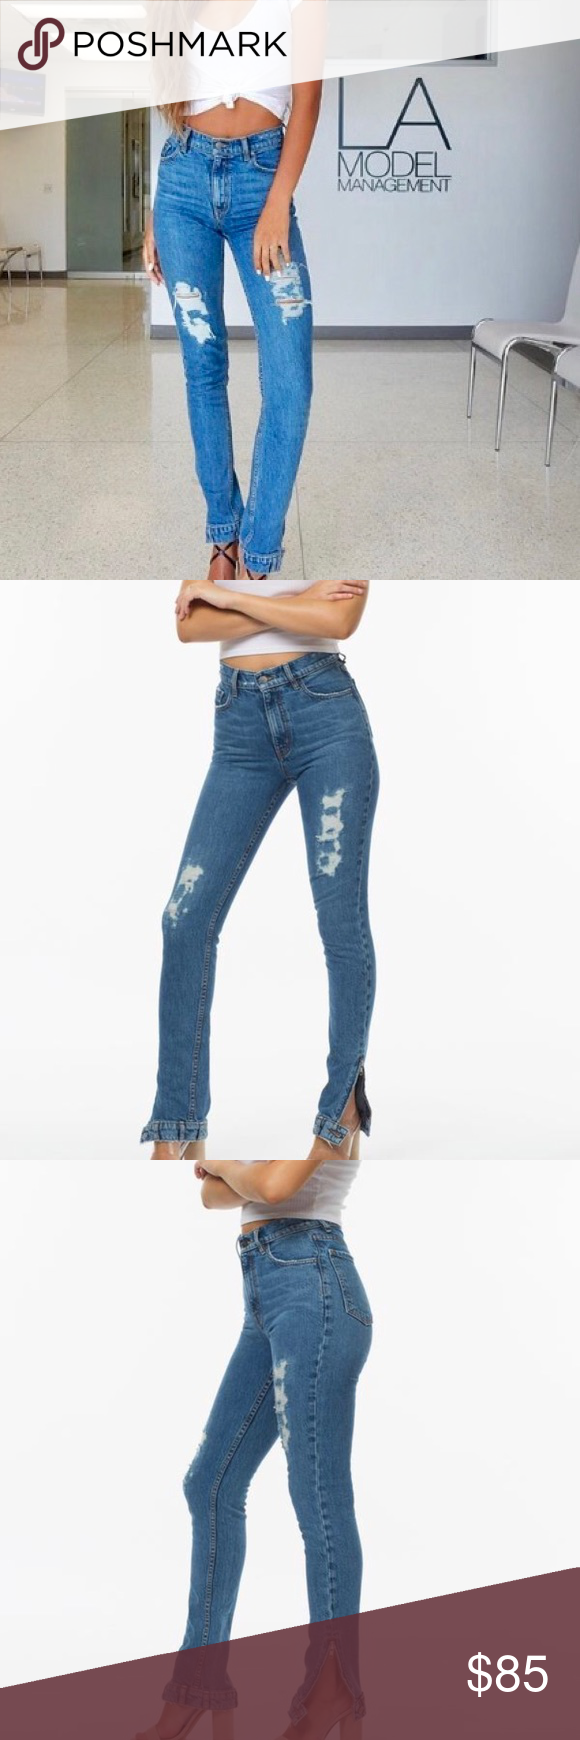 """NWT REVICE """"Farrah"""" vintage high waisted mom jeans We're turning your world upside down with our new body and high waisted fit in the Farrah jean. Made with high quality, imported, Italian fabric this jean is the jean of your dreams. With this hip hugging fit this jean will surely give you the booty lift you've been looking for. Moonlight wash.  - 33"""" Inseam - 11"""" Rise - True to size - Zipper Detail at Ankle - Waistband detail at Ankle complete with belt loops and button hardware - 98%…"""